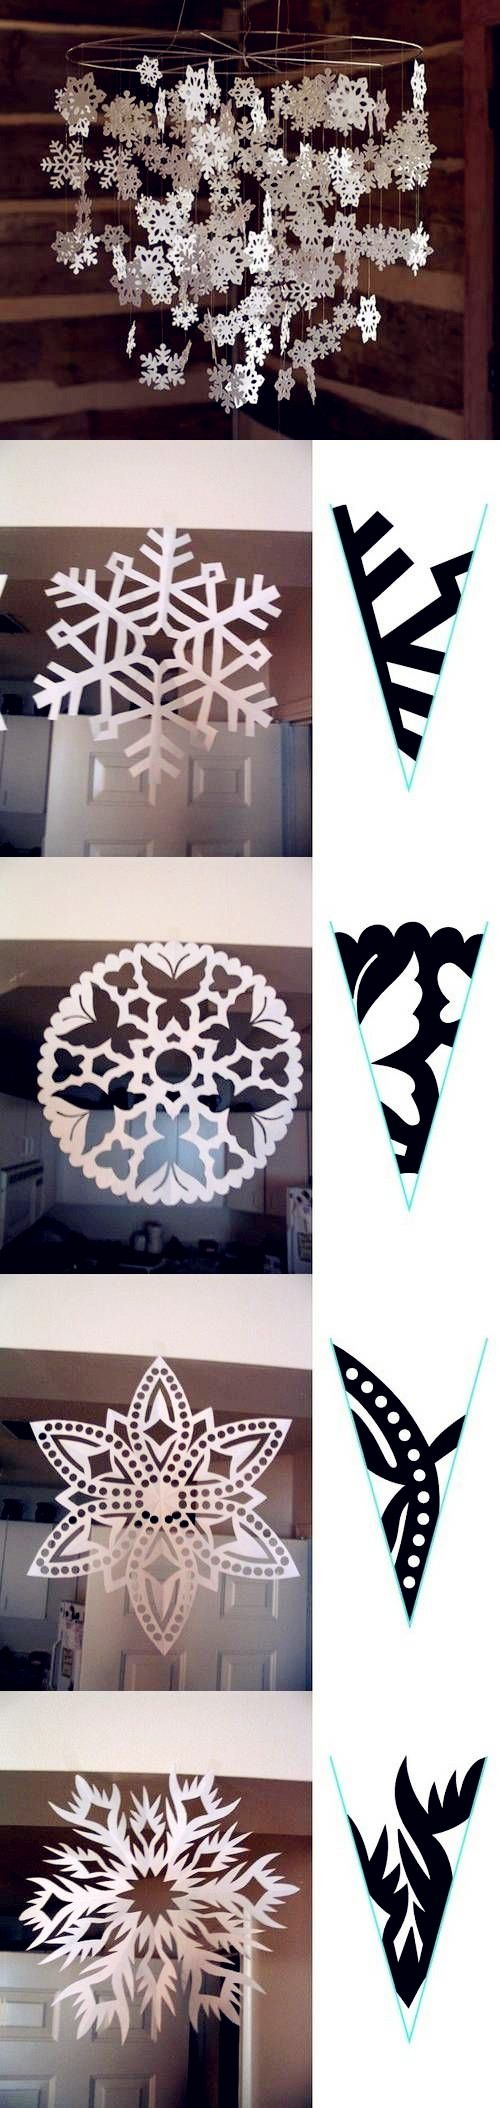 Paper snowflake cutting pattern easy to follow folding for Diy snowflakes paper pattern